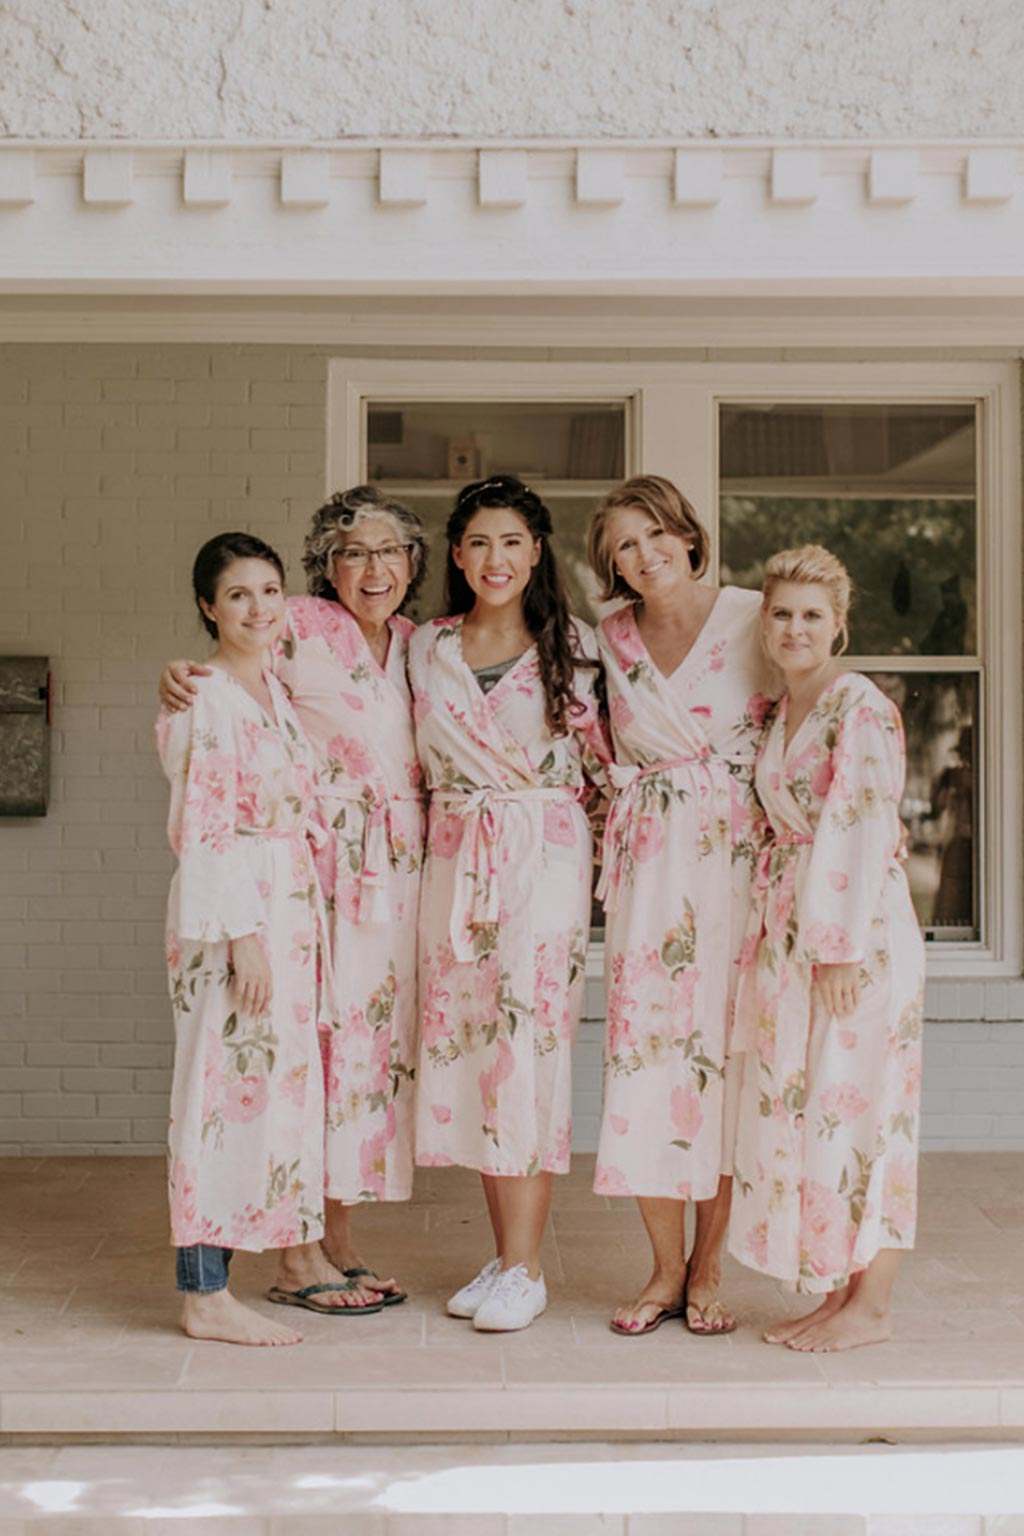 Bride and bridesmaids getting ready for wedding day with pink floral silk robes